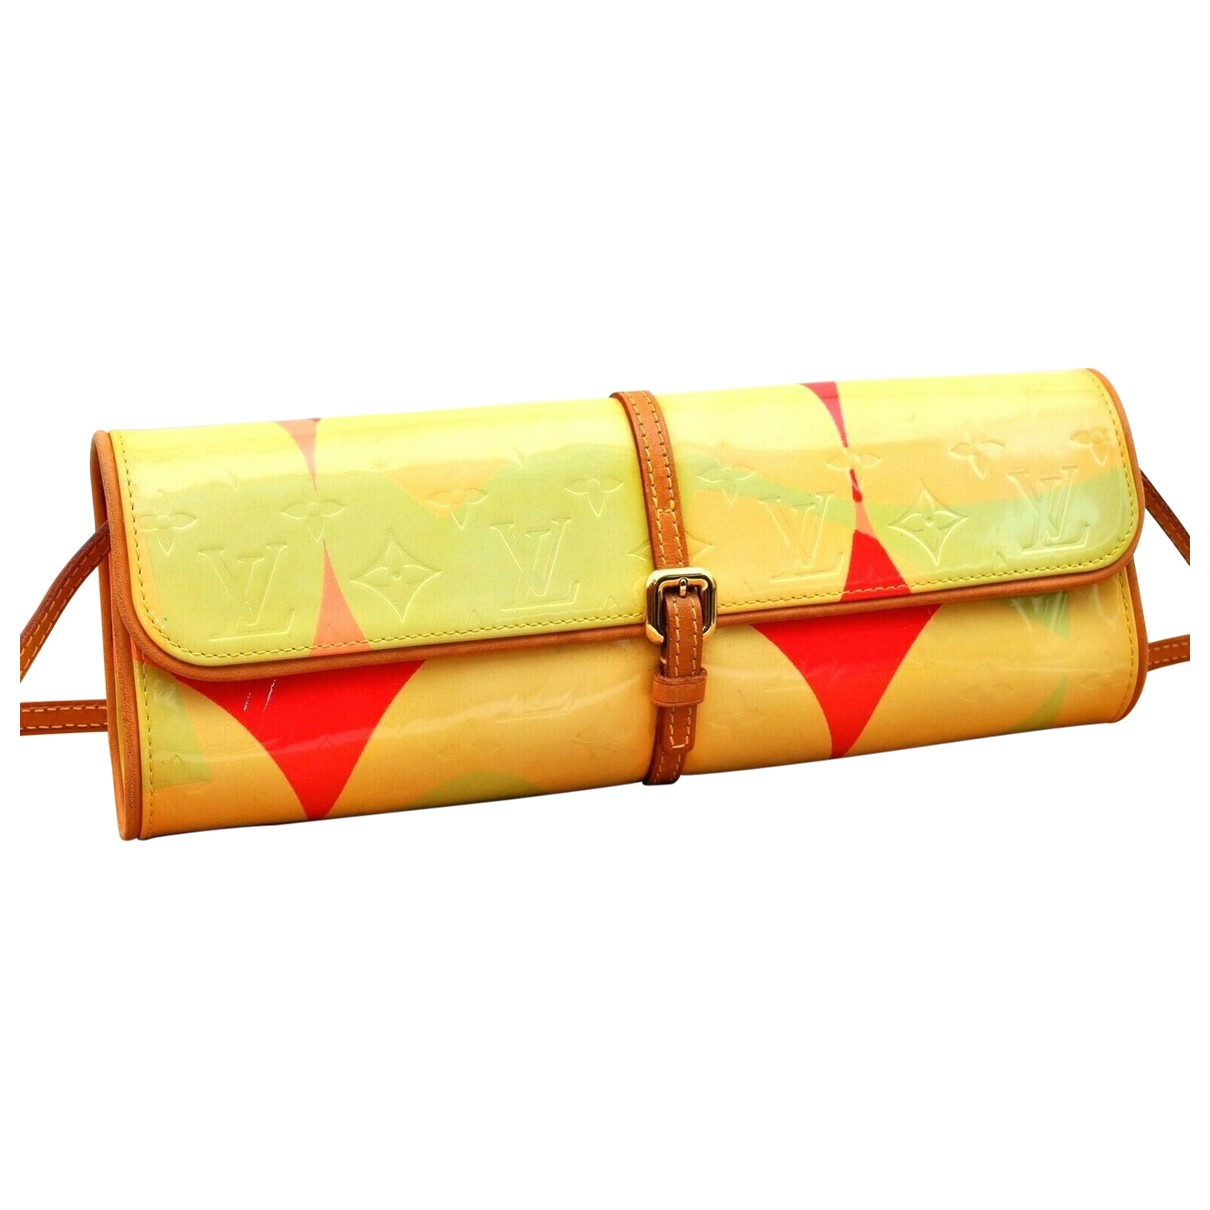 Louis Vuitton \N Yellow Patent leather Clutch bag for Women \N